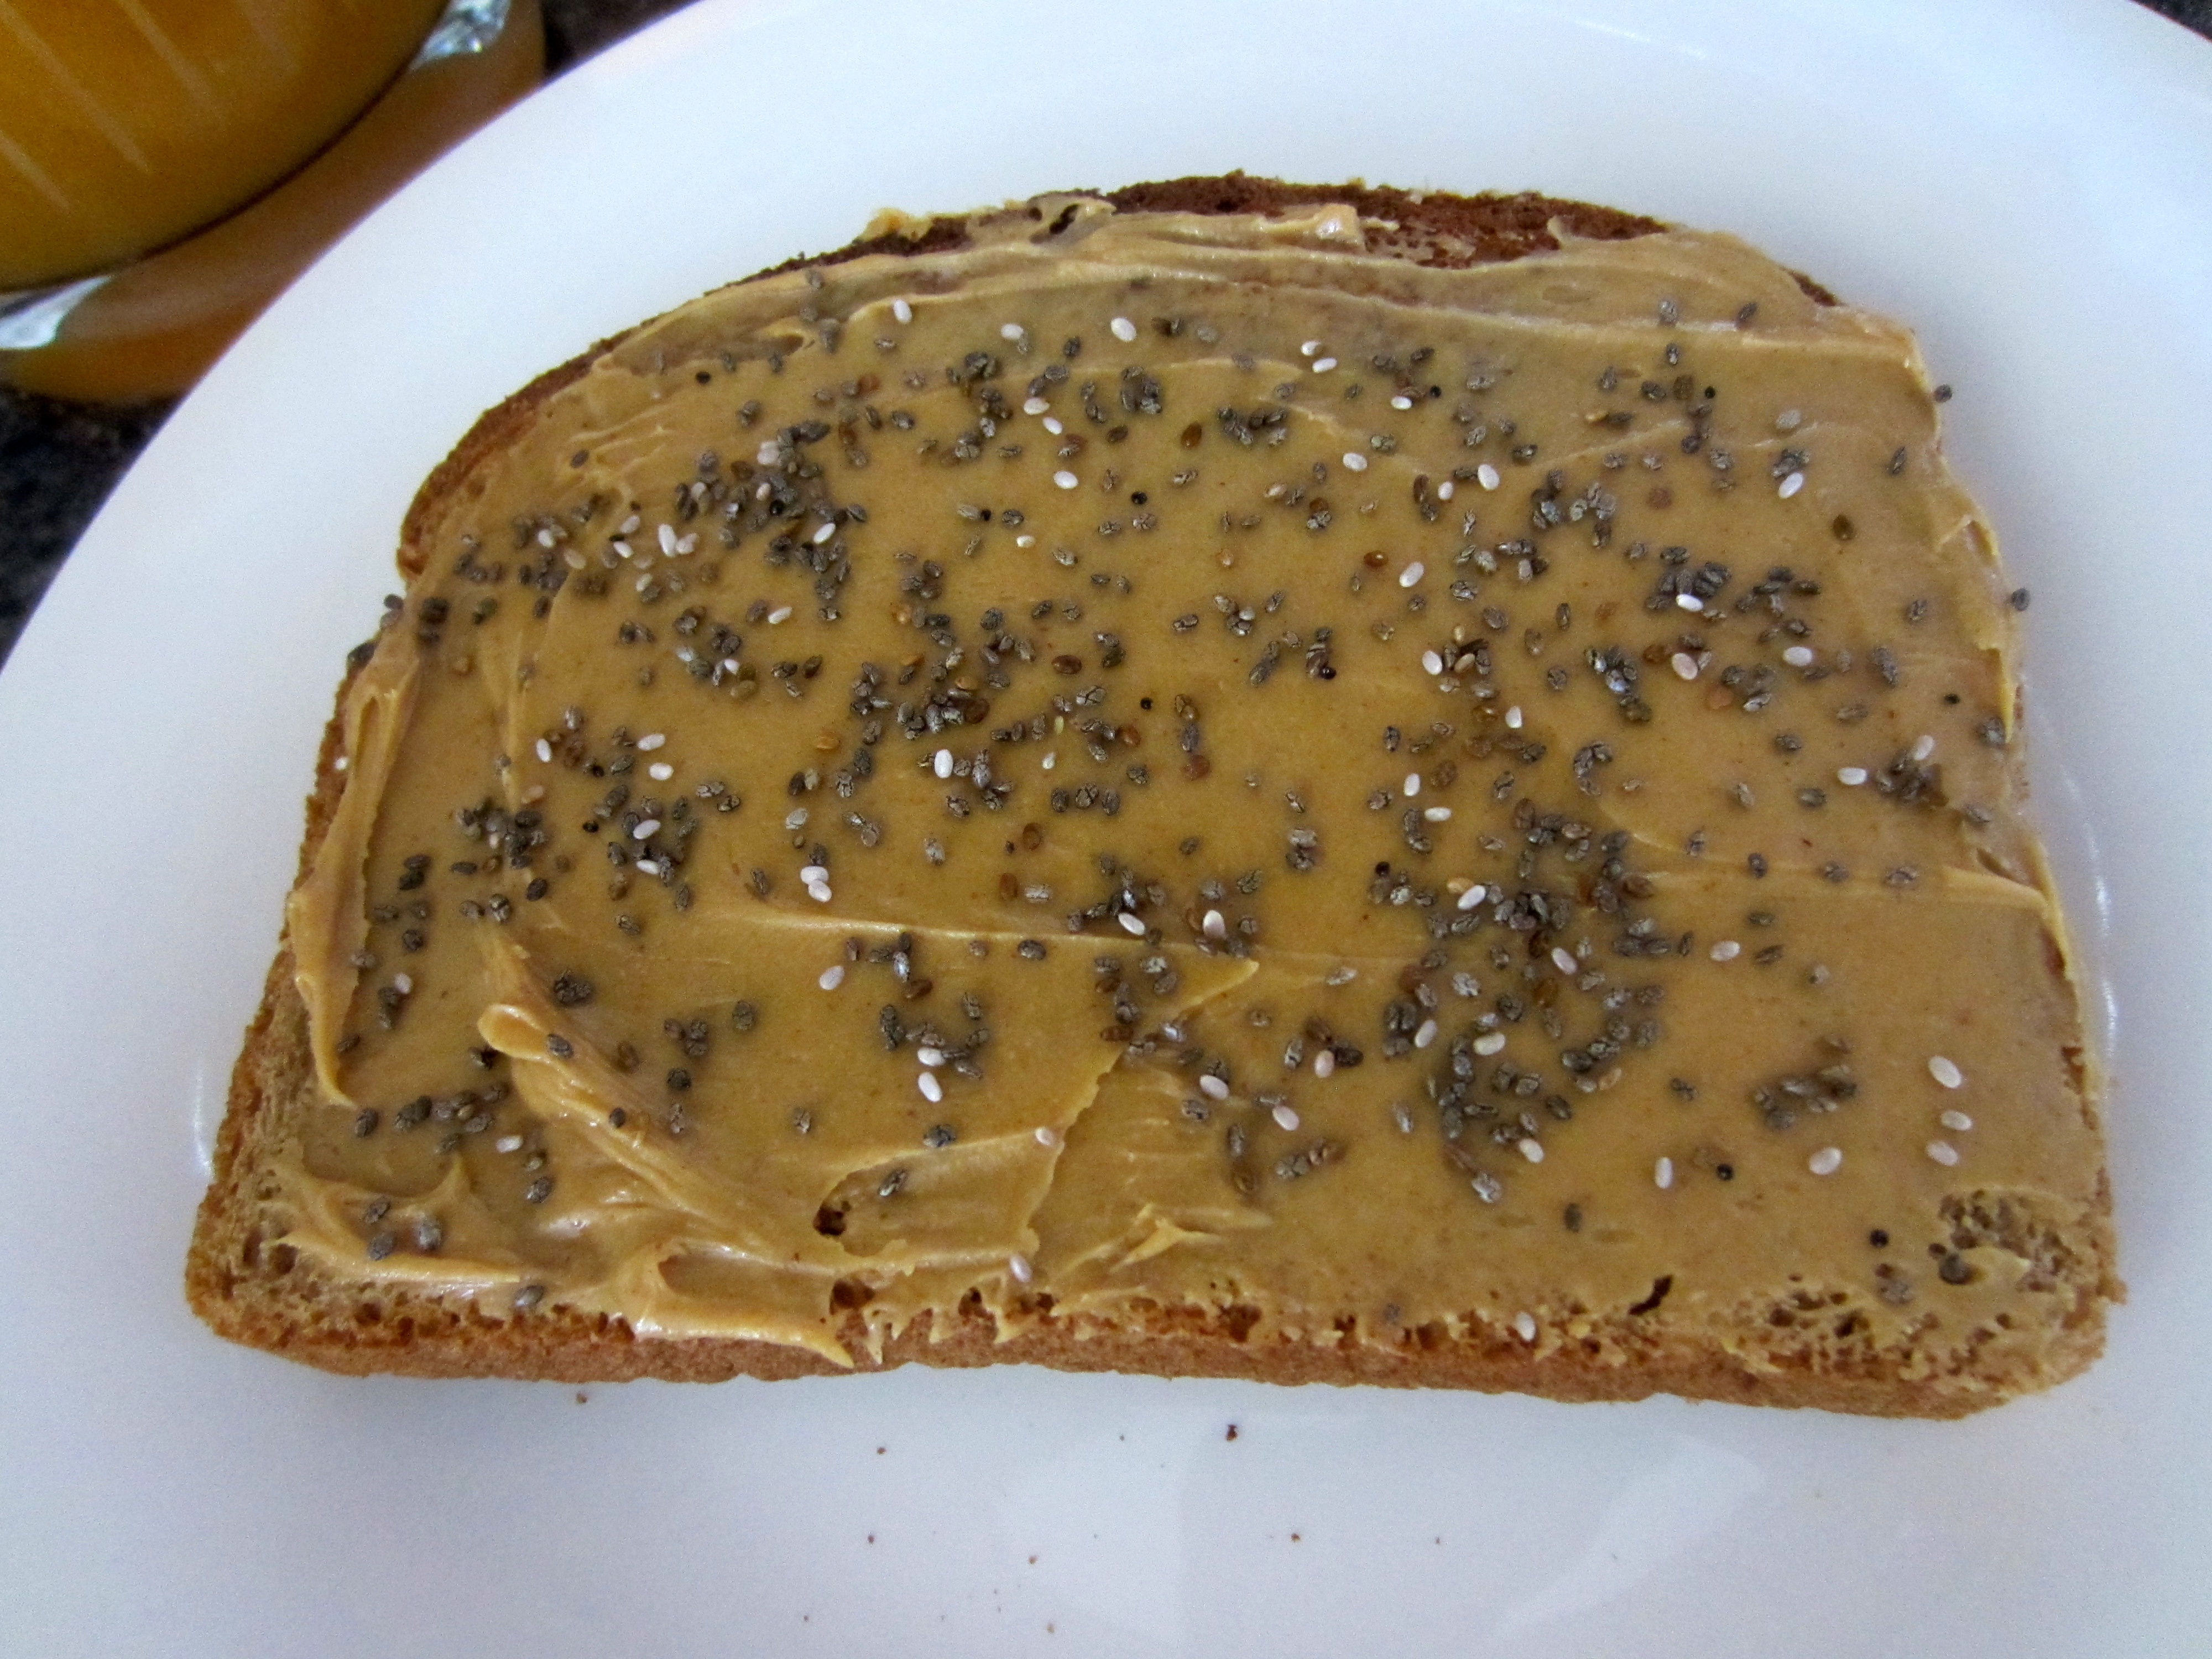 Peanut Butter and chia seeds on toast